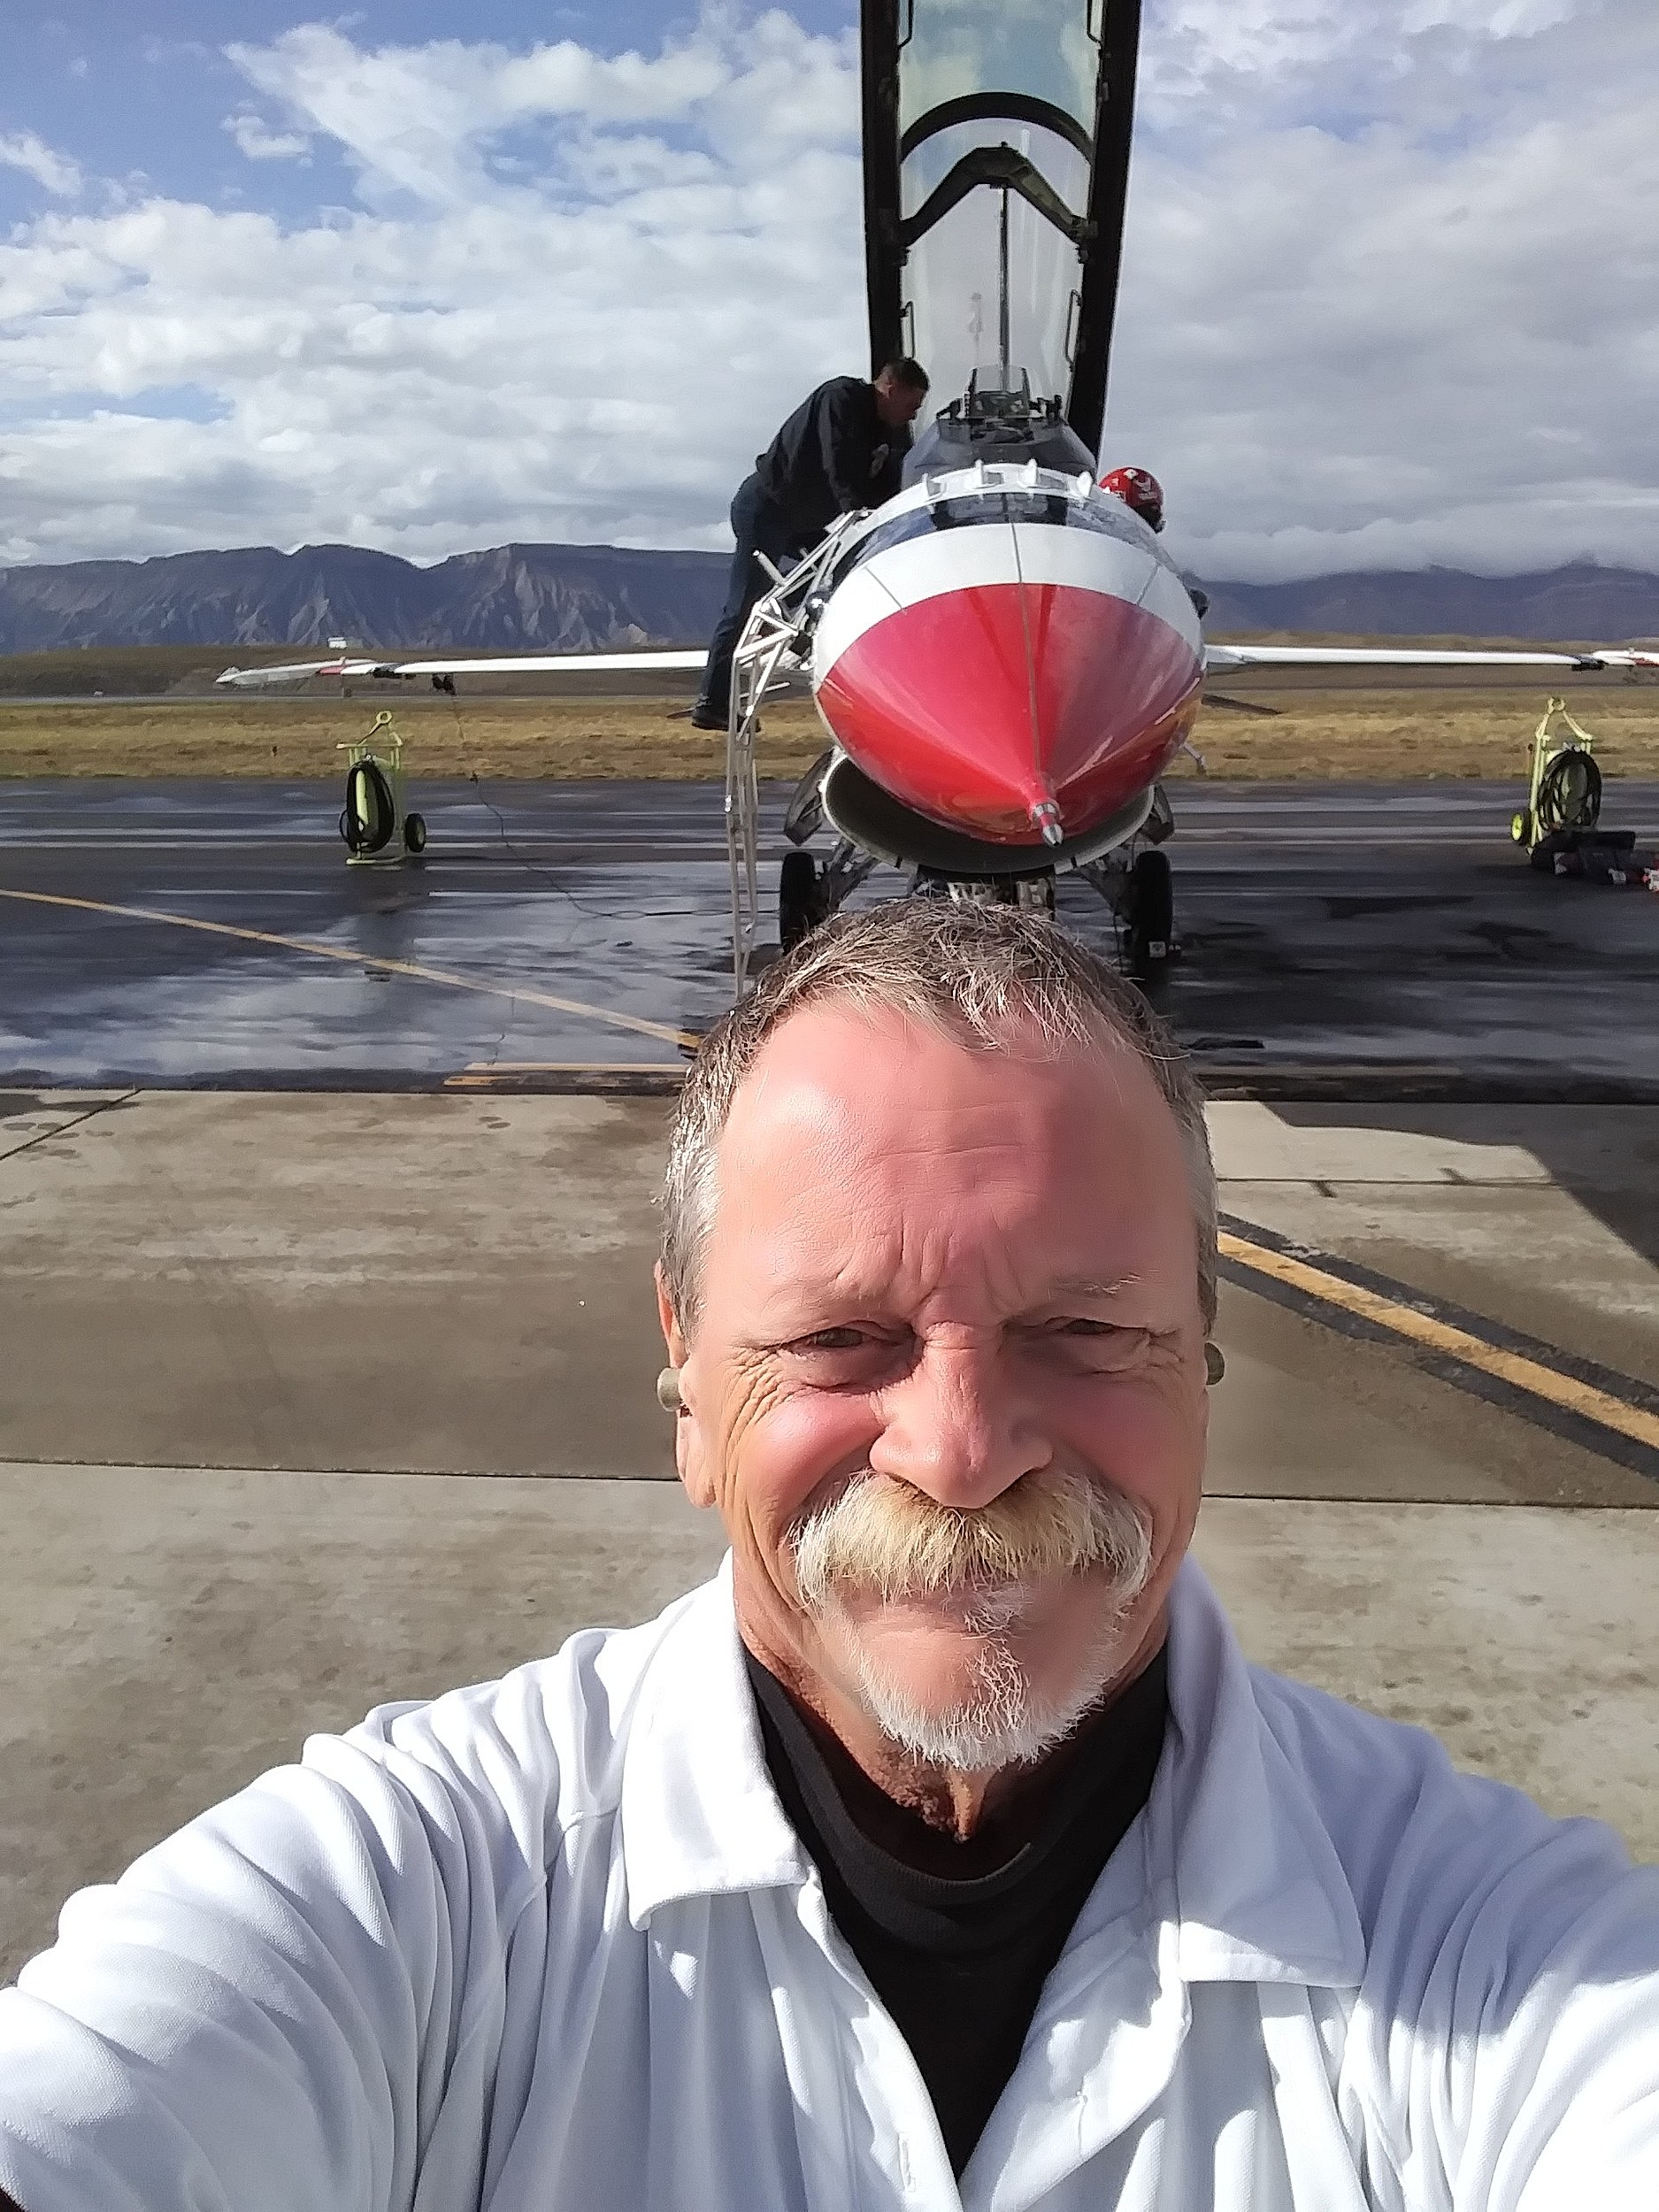 Behind The Scenes At The Grand Junction Air Show